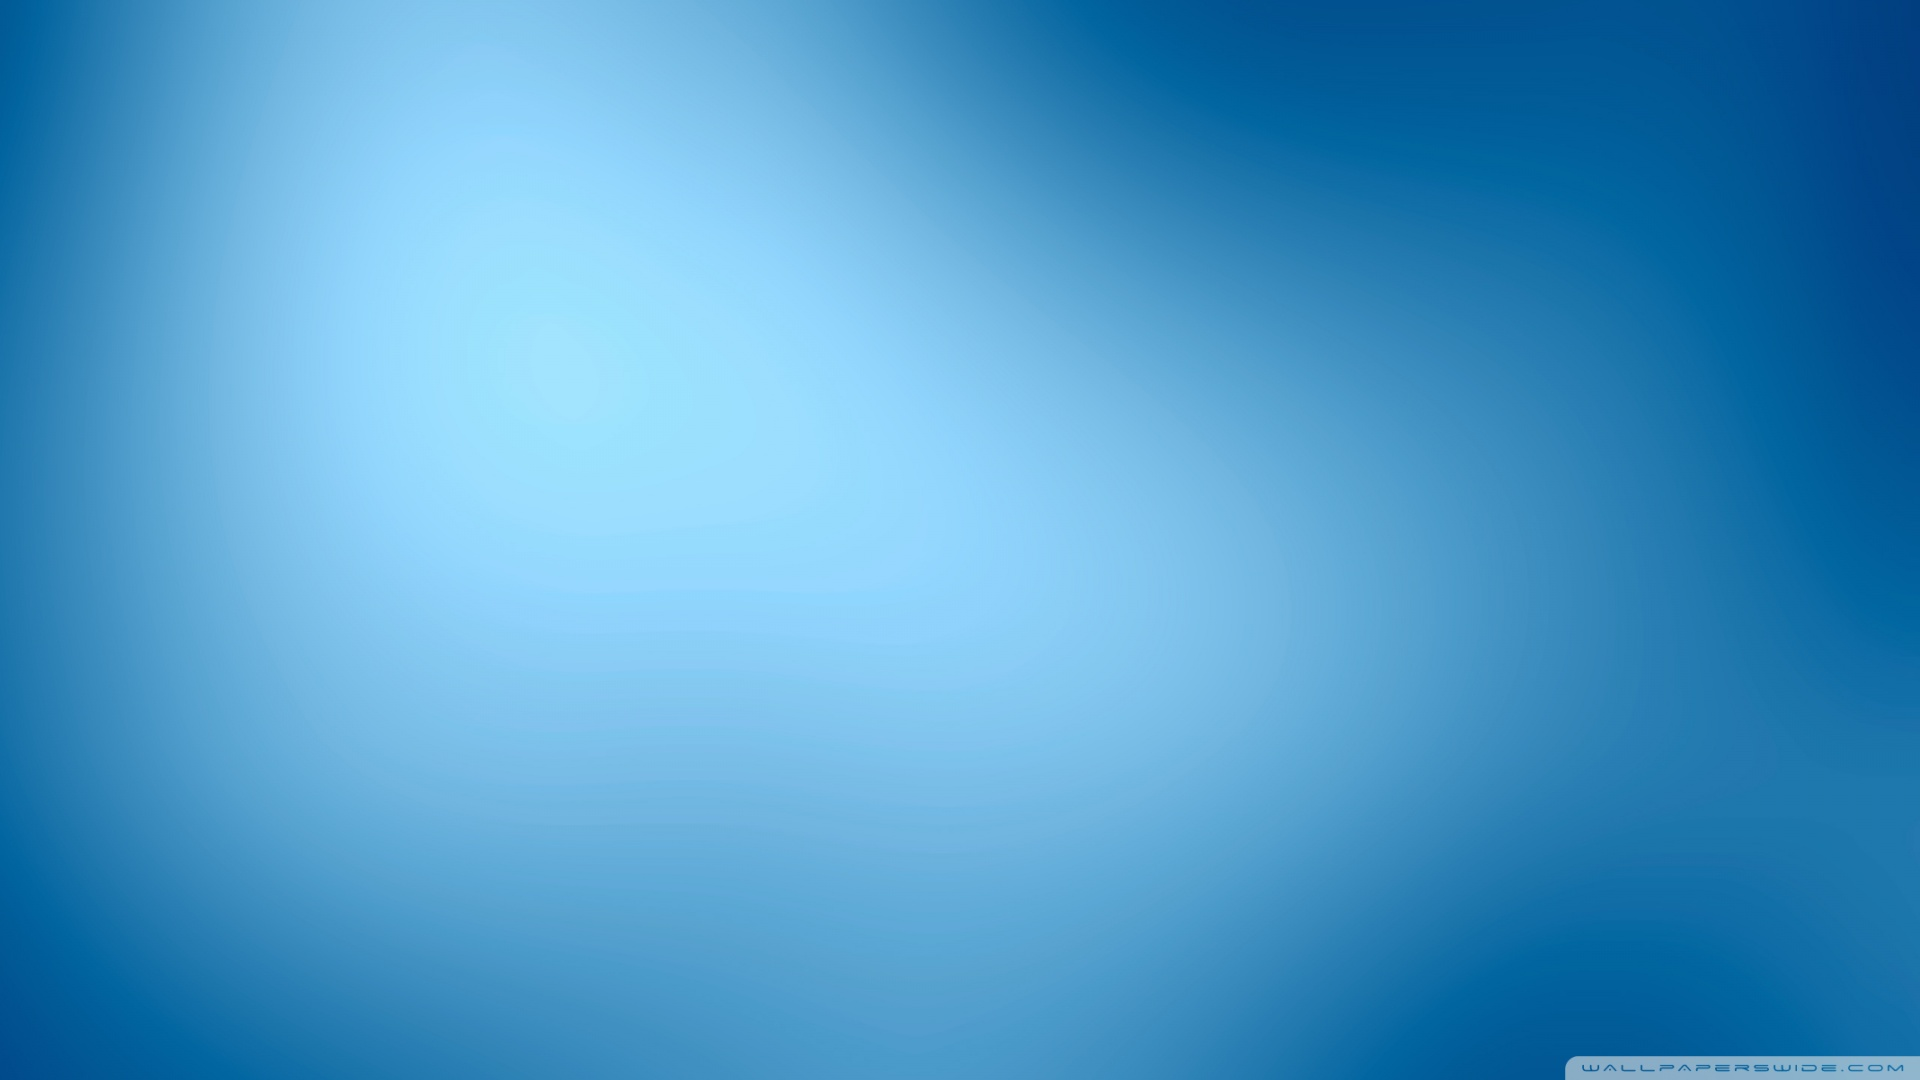 simple-blue-background-abstract-photo-blue-background